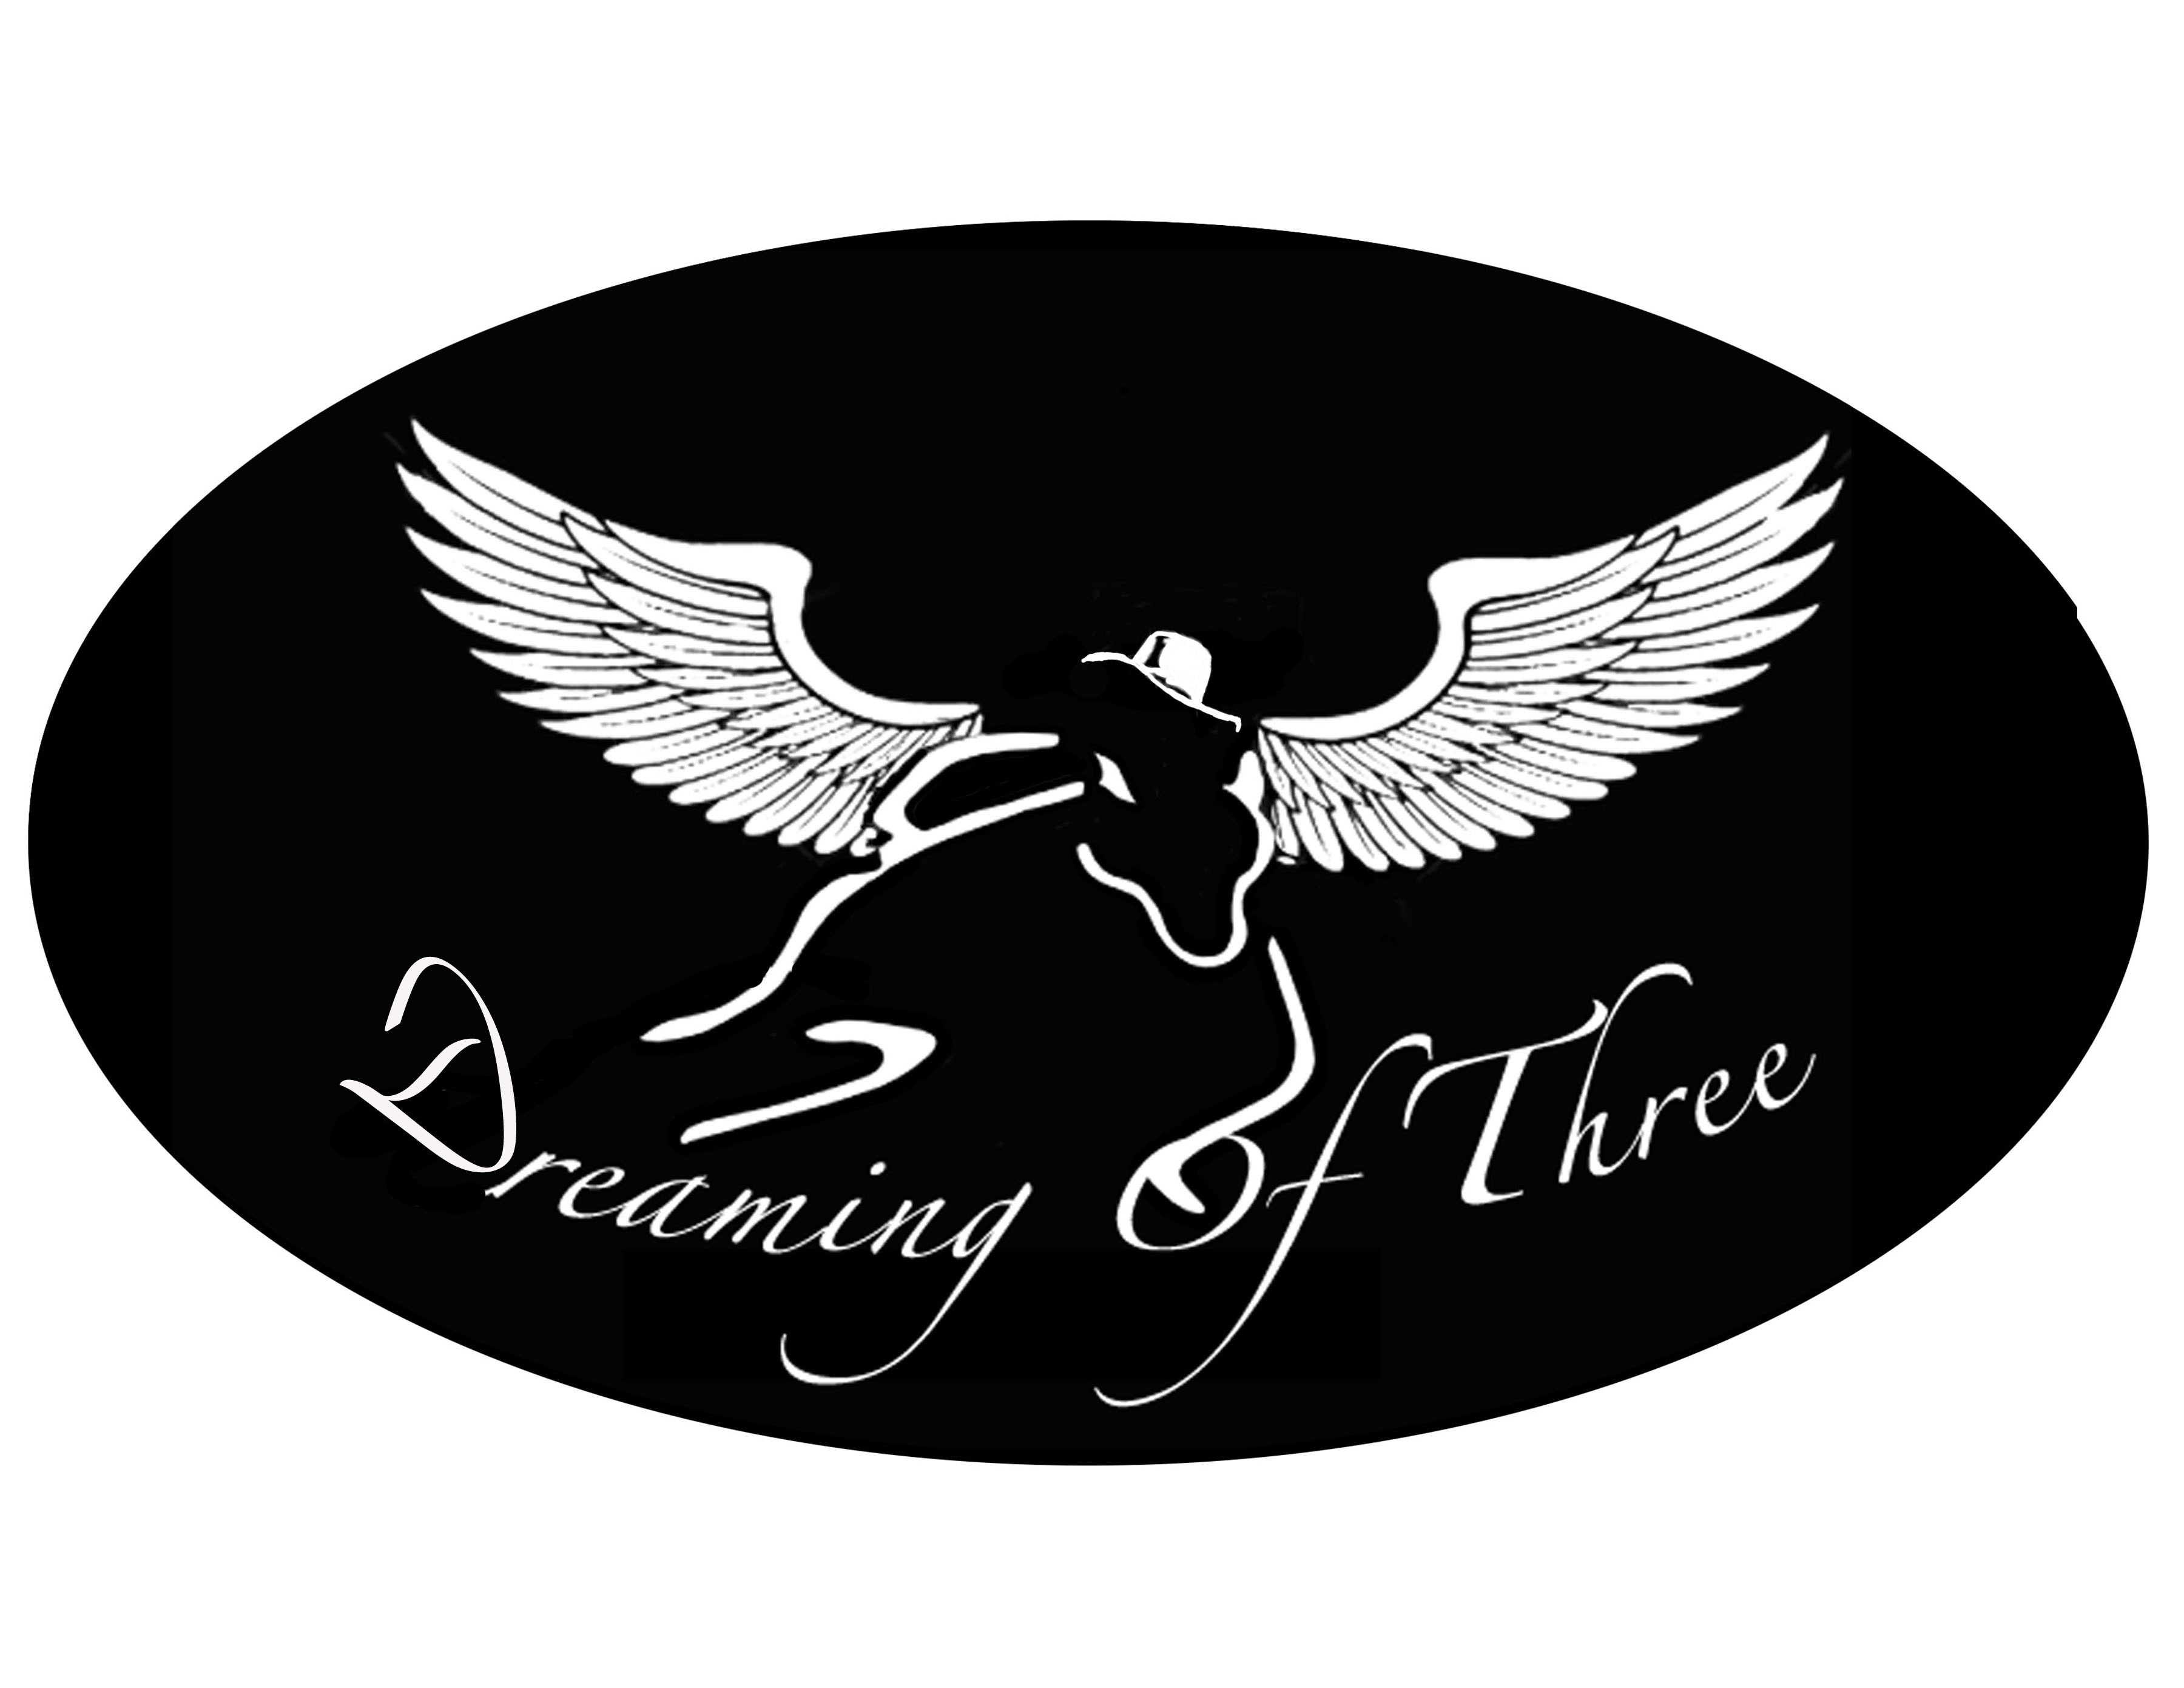 dreaming of three logo